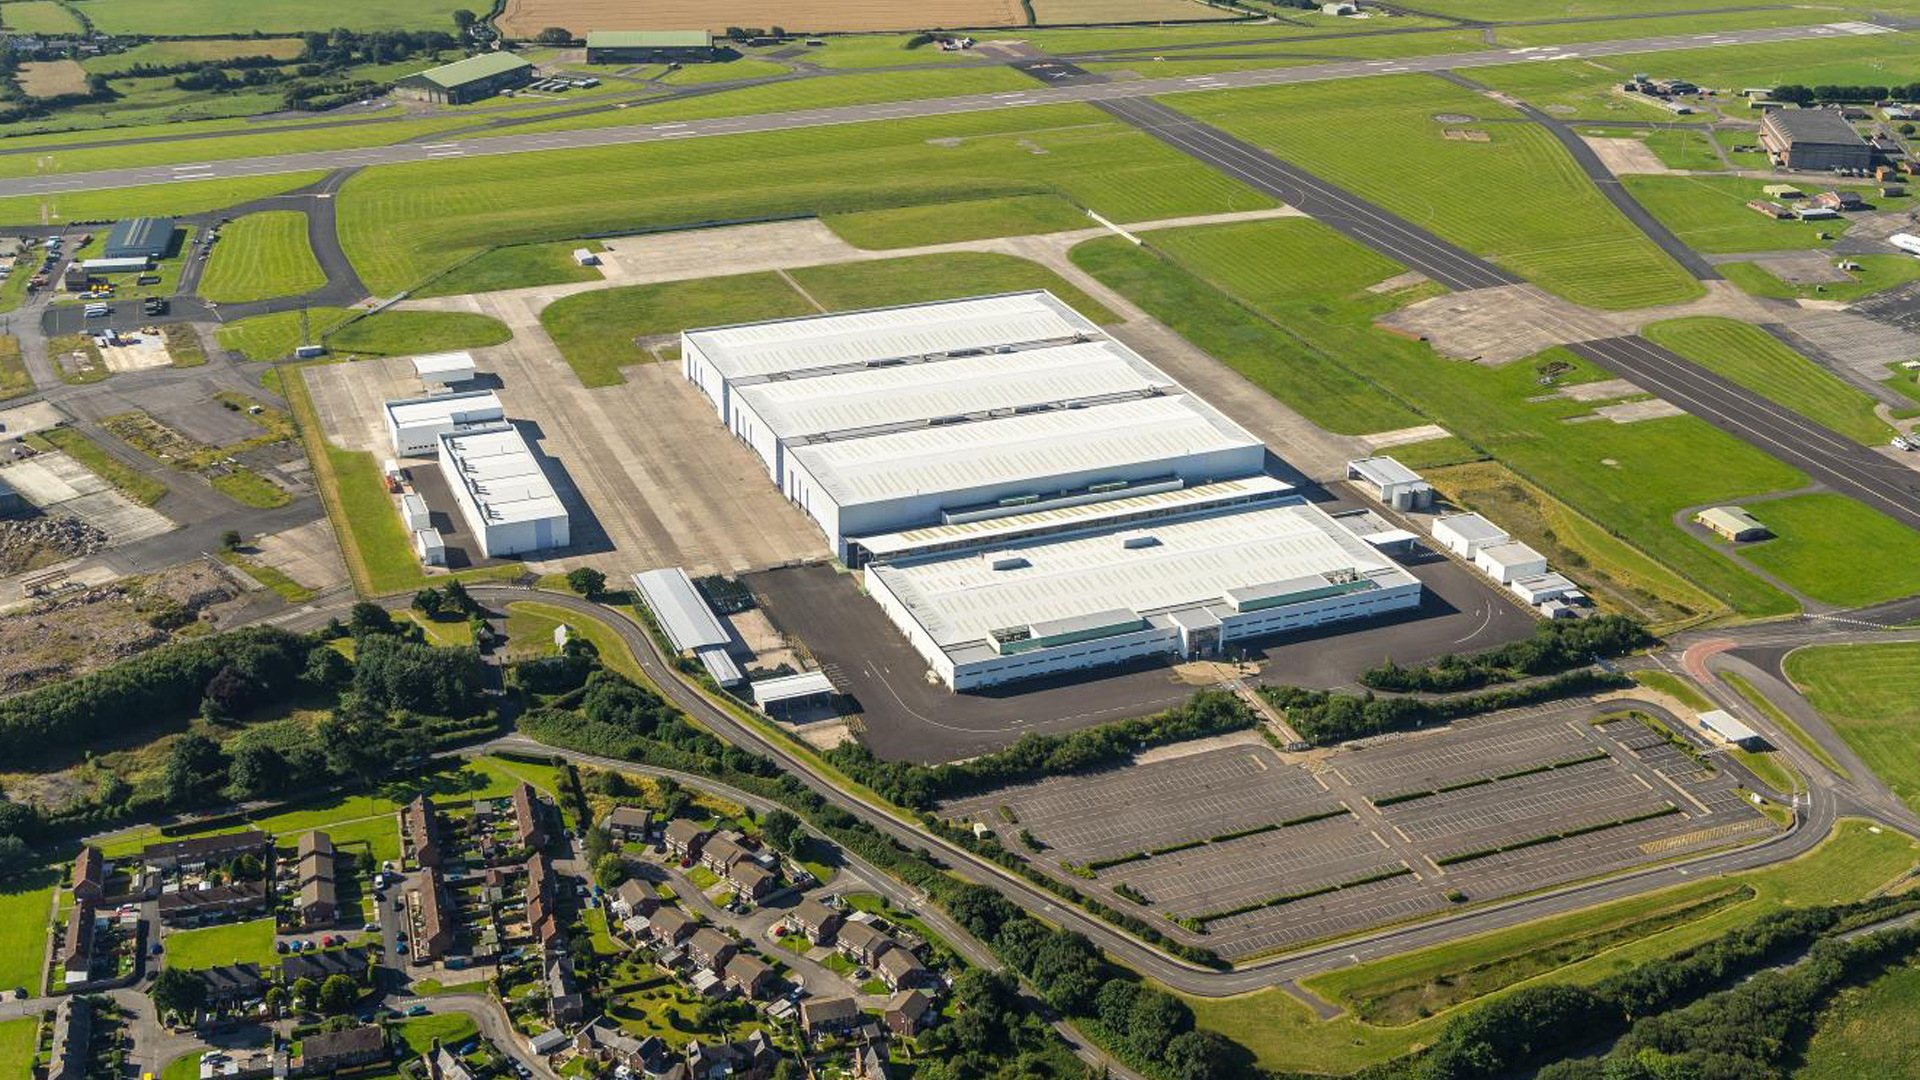 Aircraft hangar in St Athan, Wales to be converted into Aston Martin plant